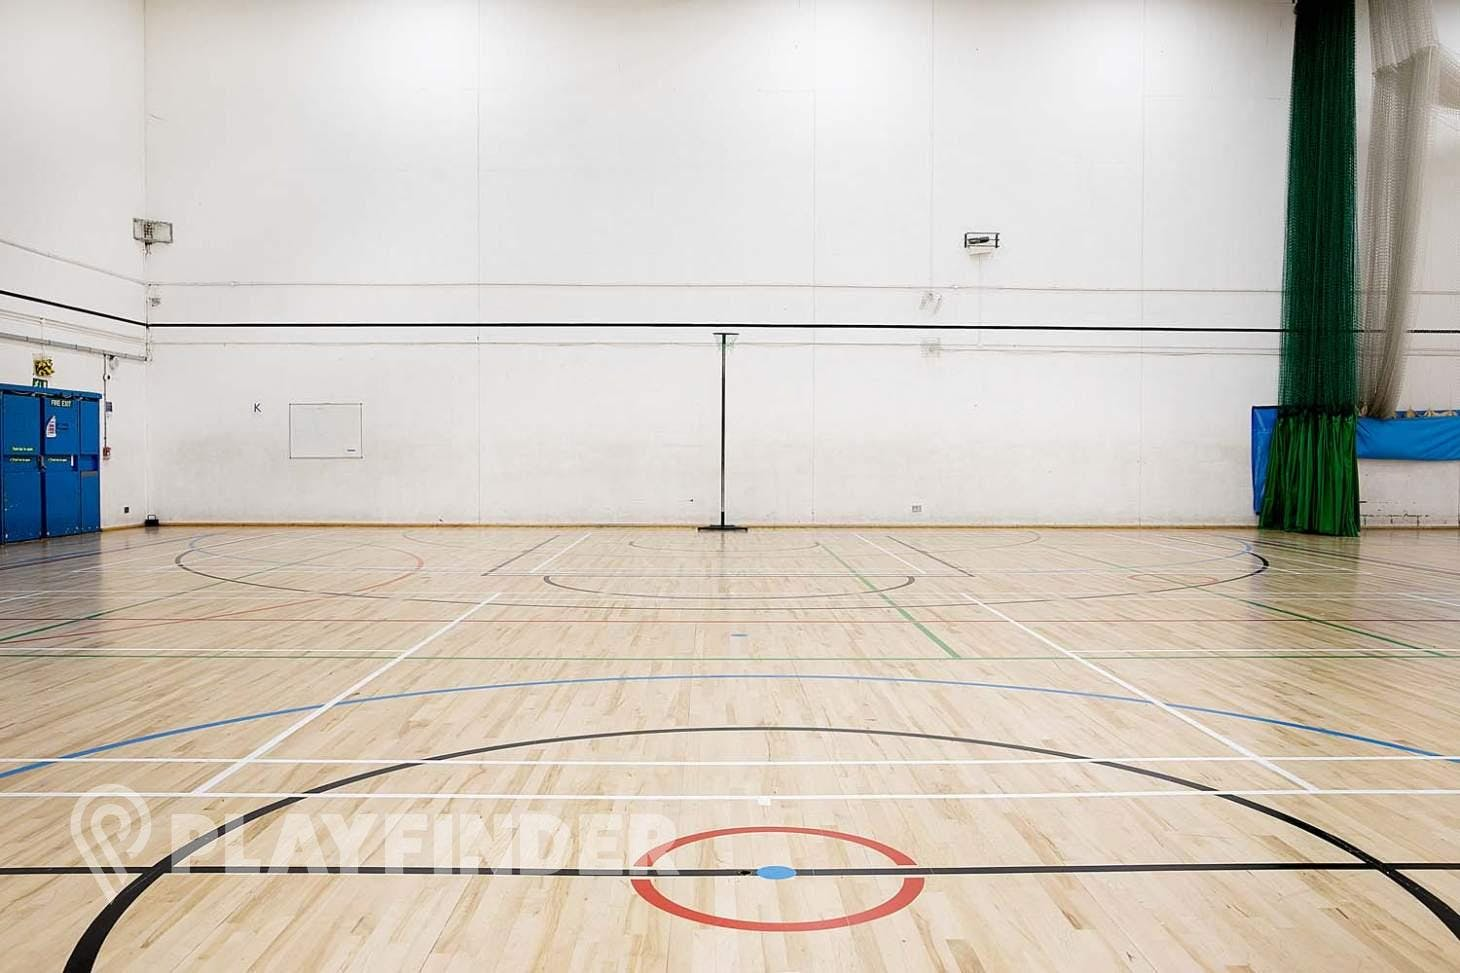 Somers Town Community Sports Centre Indoor netball court